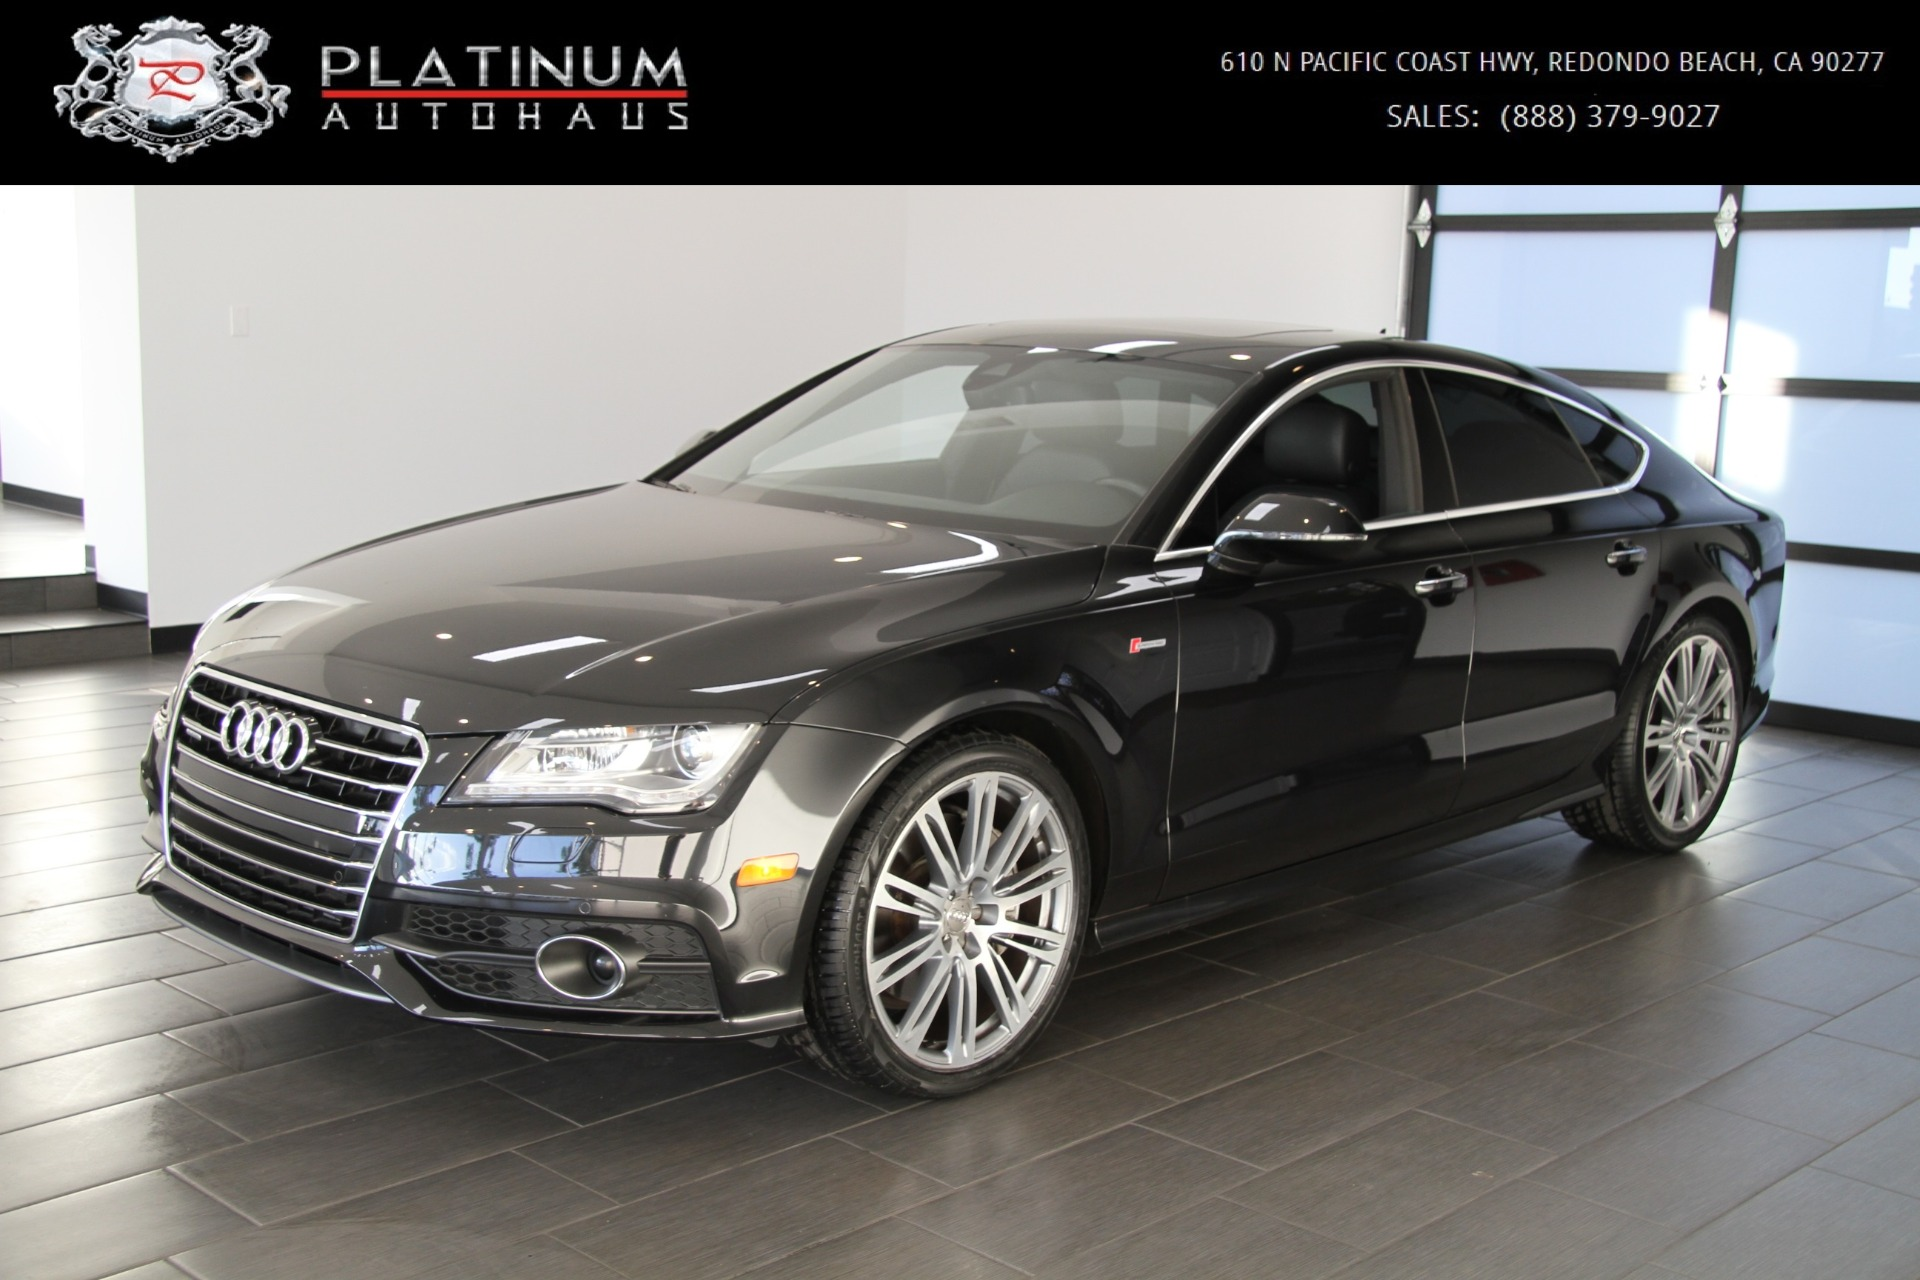 2013 Audi A7 Prestige For Sale